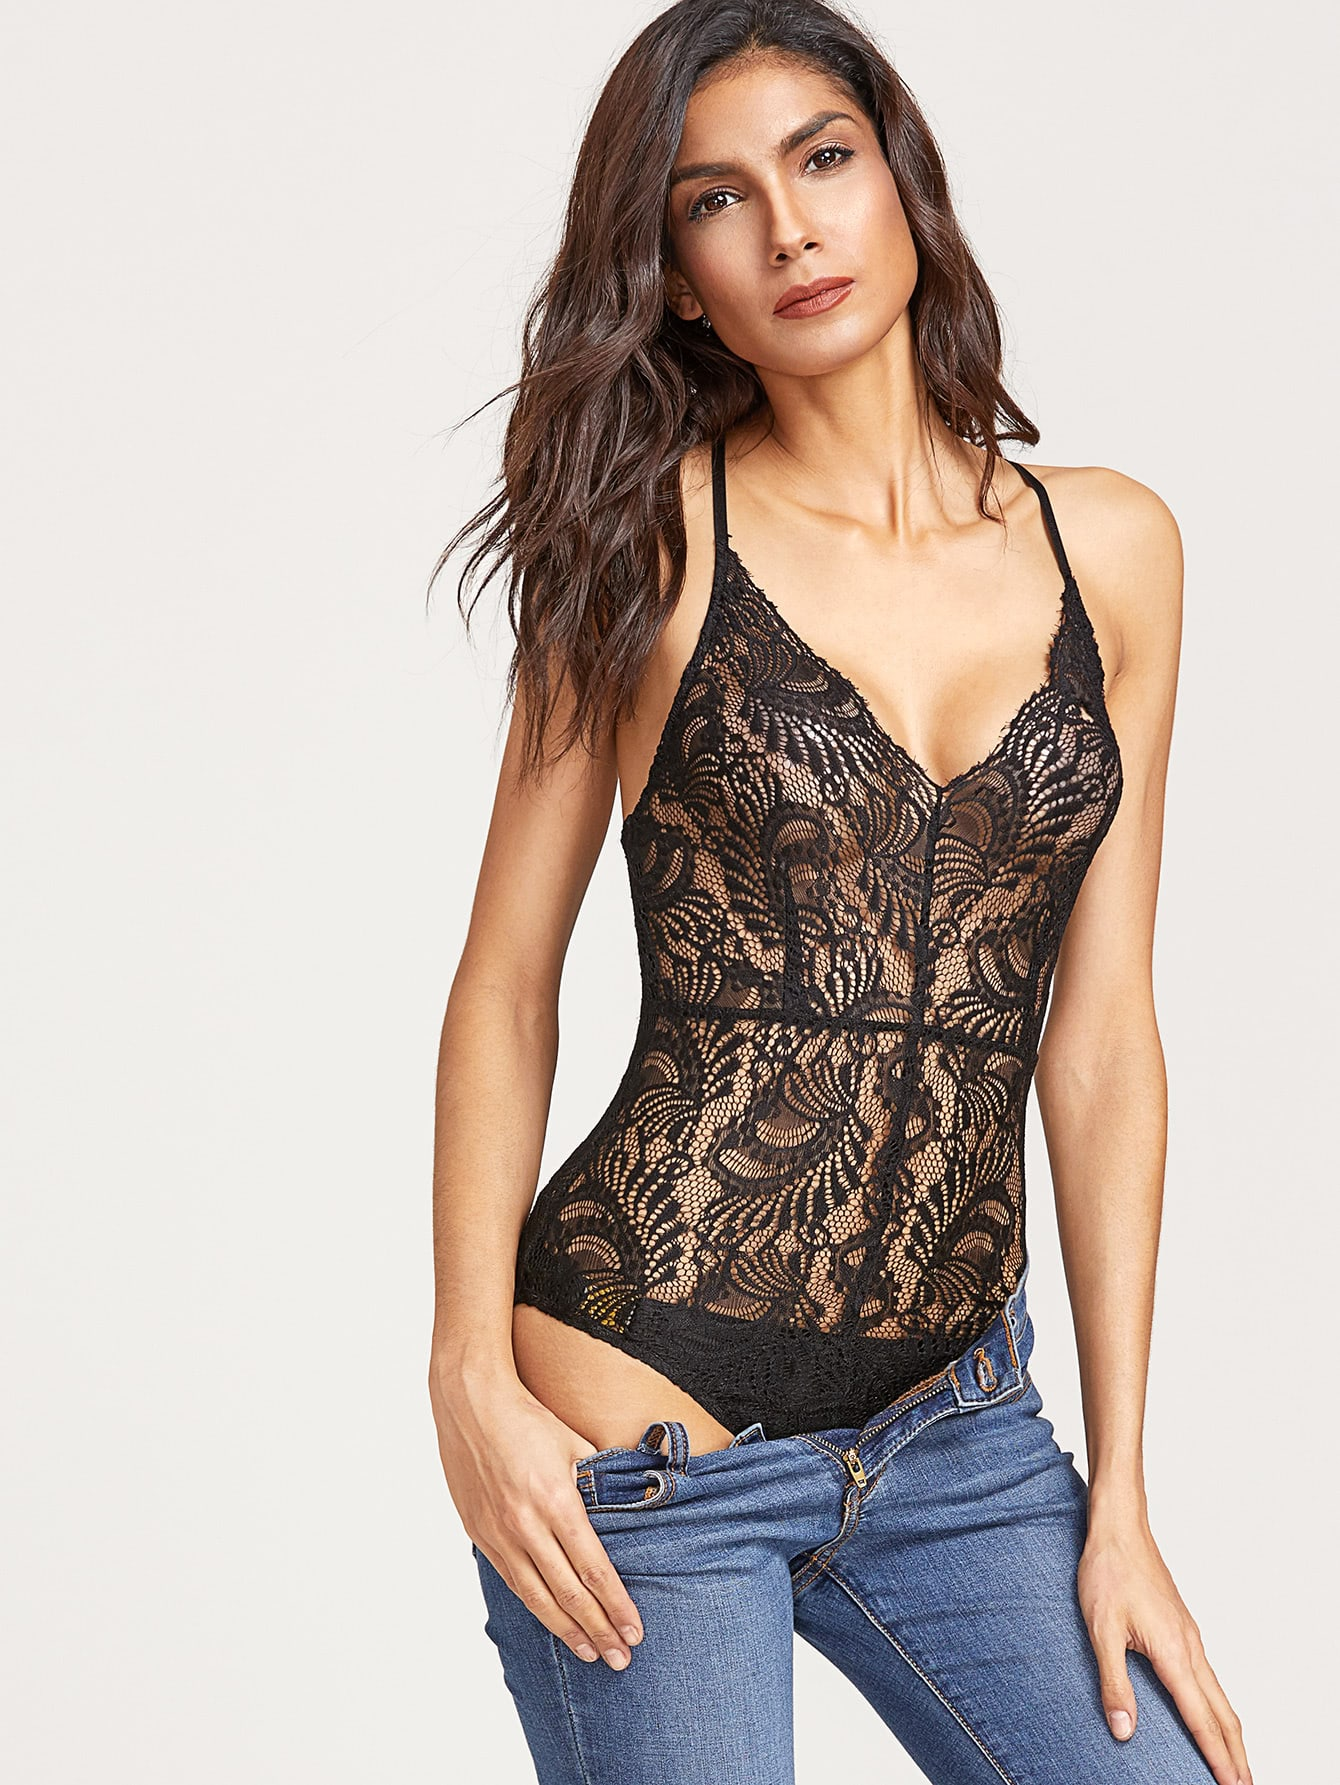 Crisscross Back Sheer Lace Bodysuit